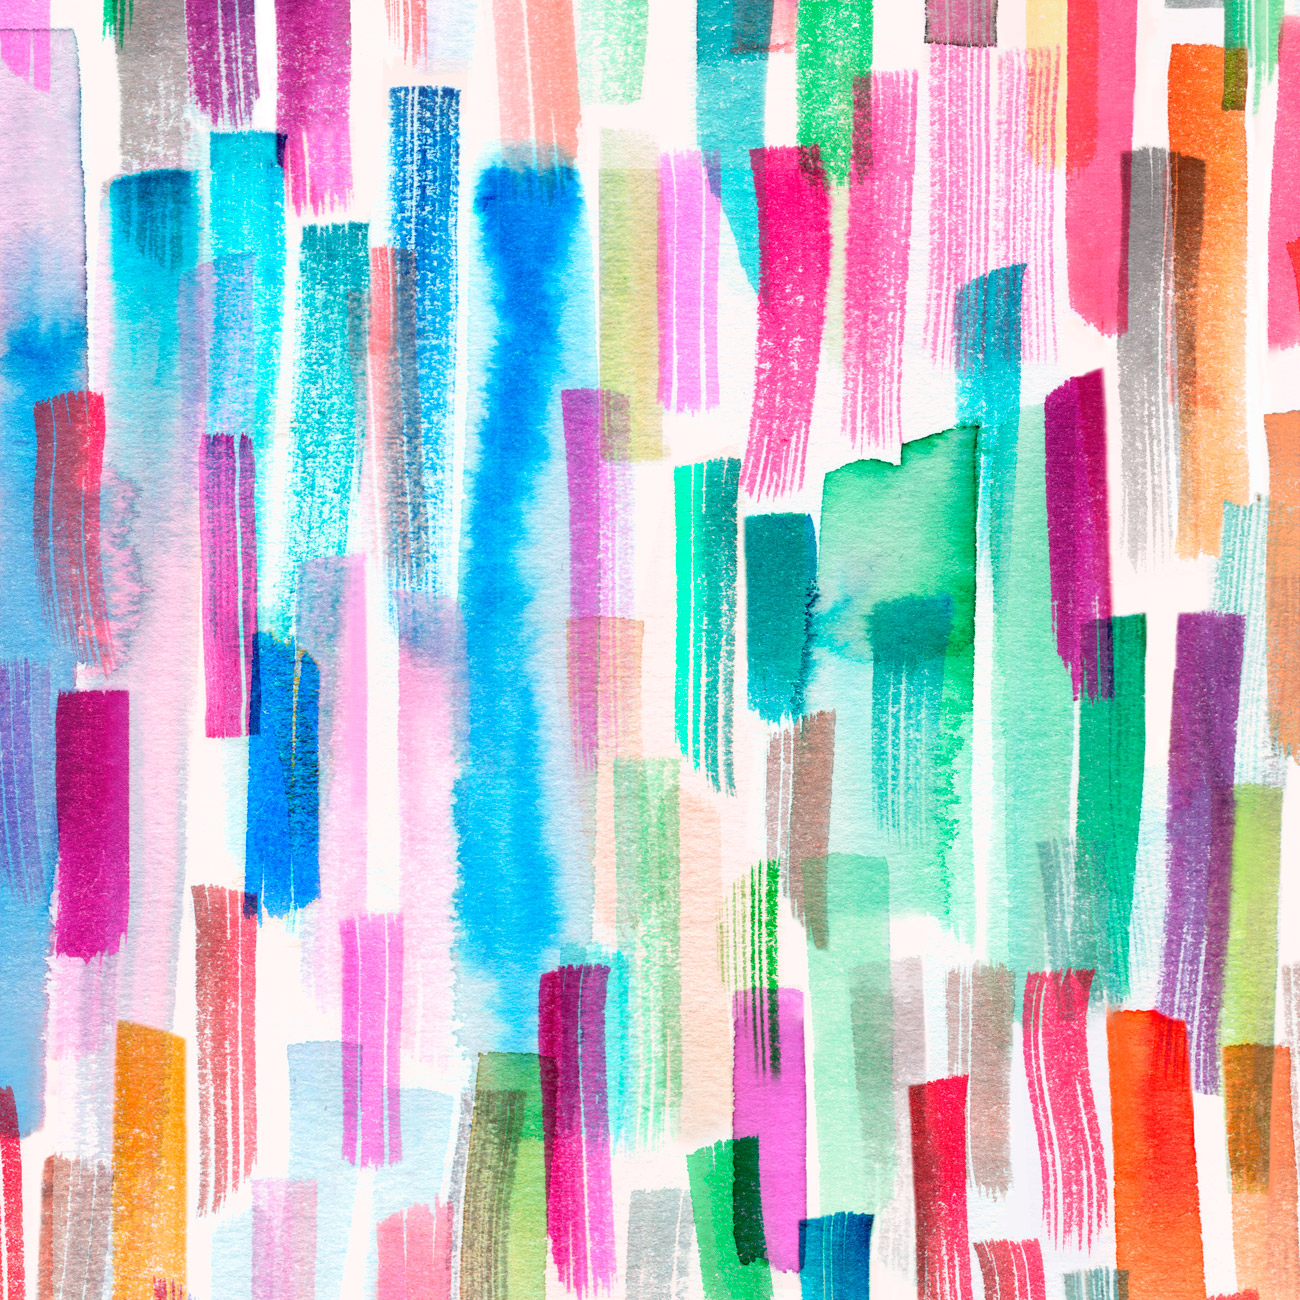 Snippet-Colorful-brushstrokes_color2